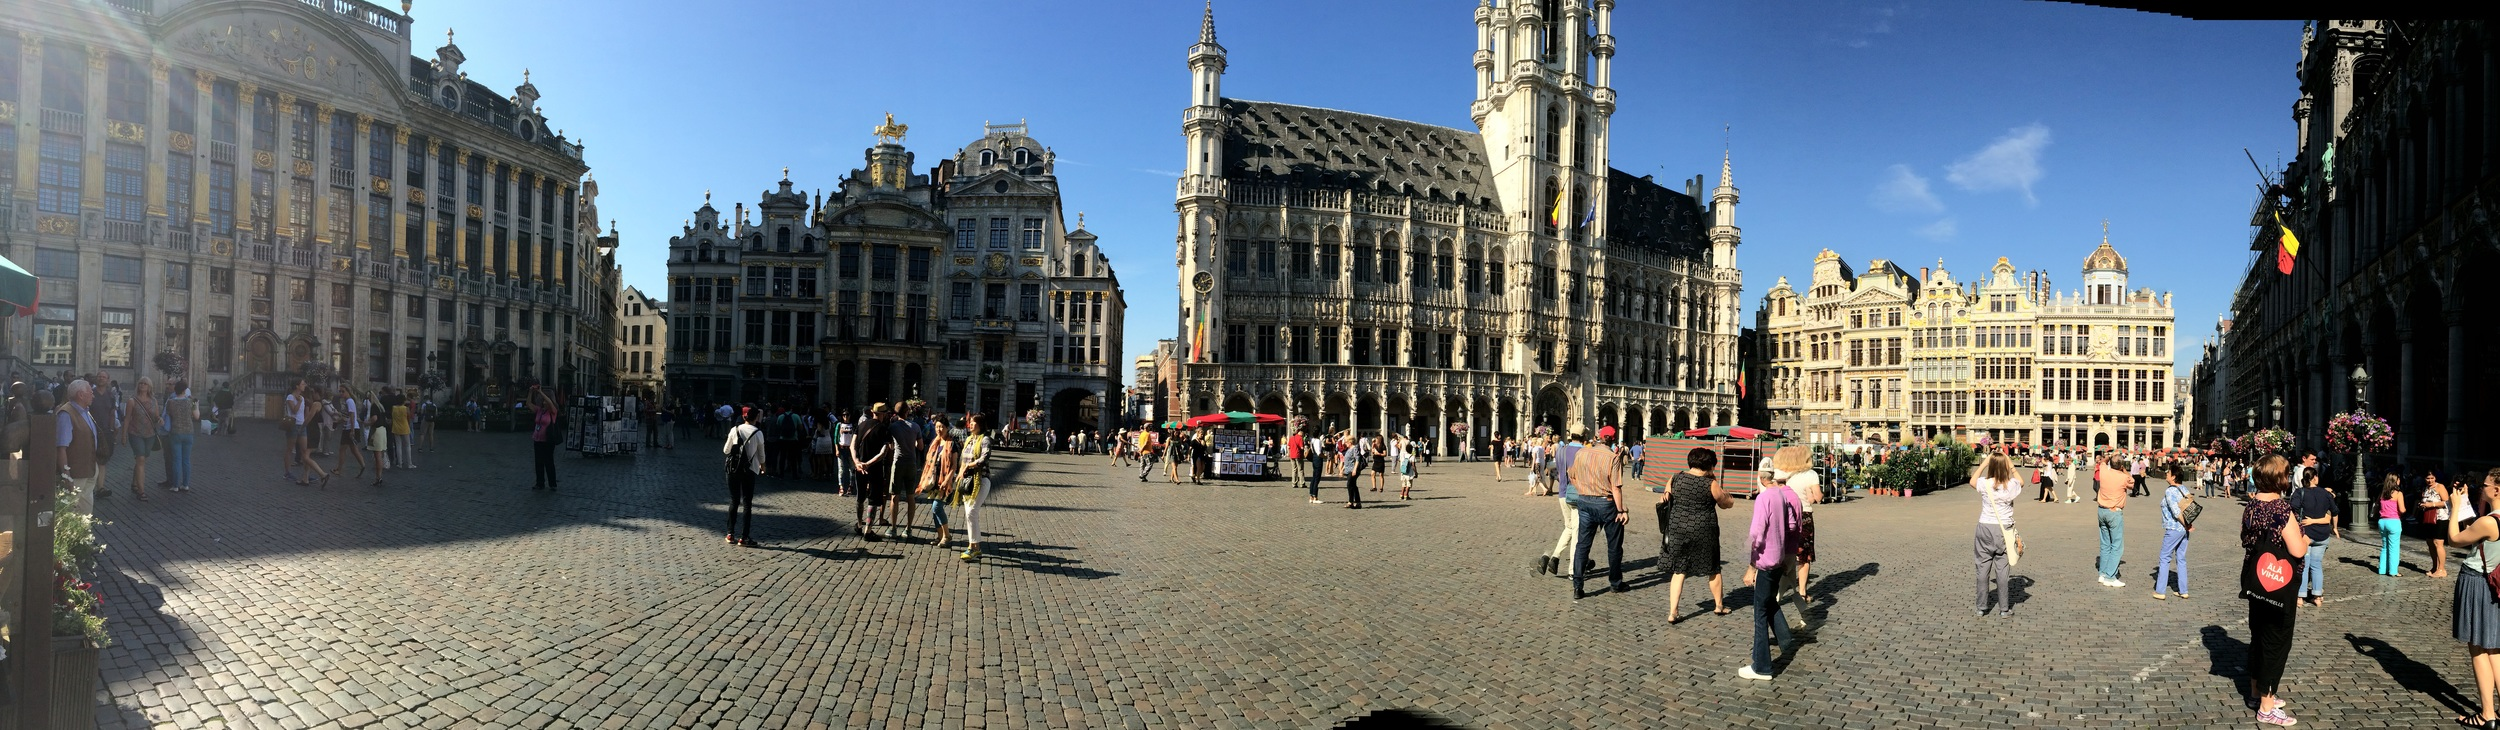 The Grand Place in Brussels. A view looking towards Brussels Town Hall.